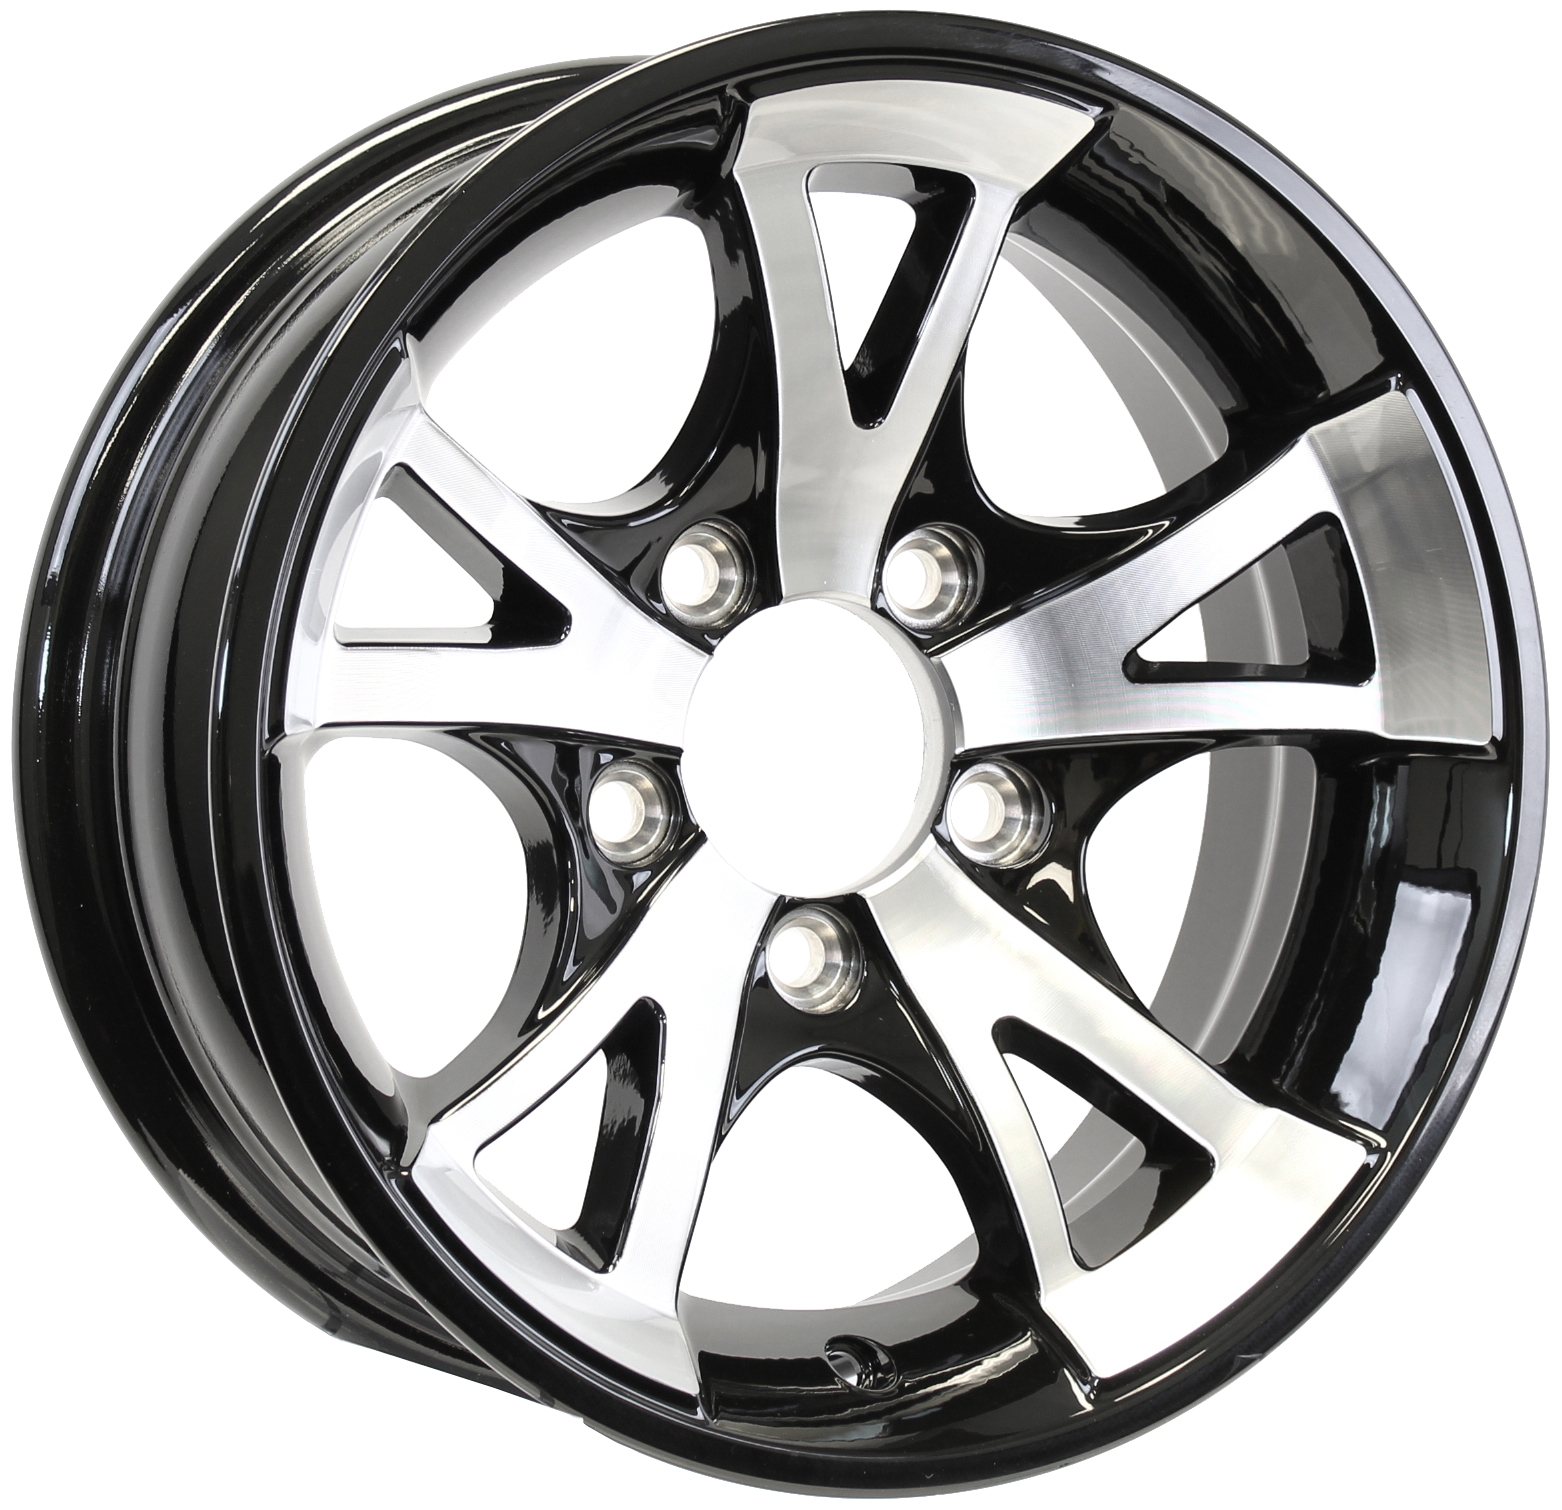 A1411- 14x5.5 5-4.5 Black Aluminum Trailer Wheel Image